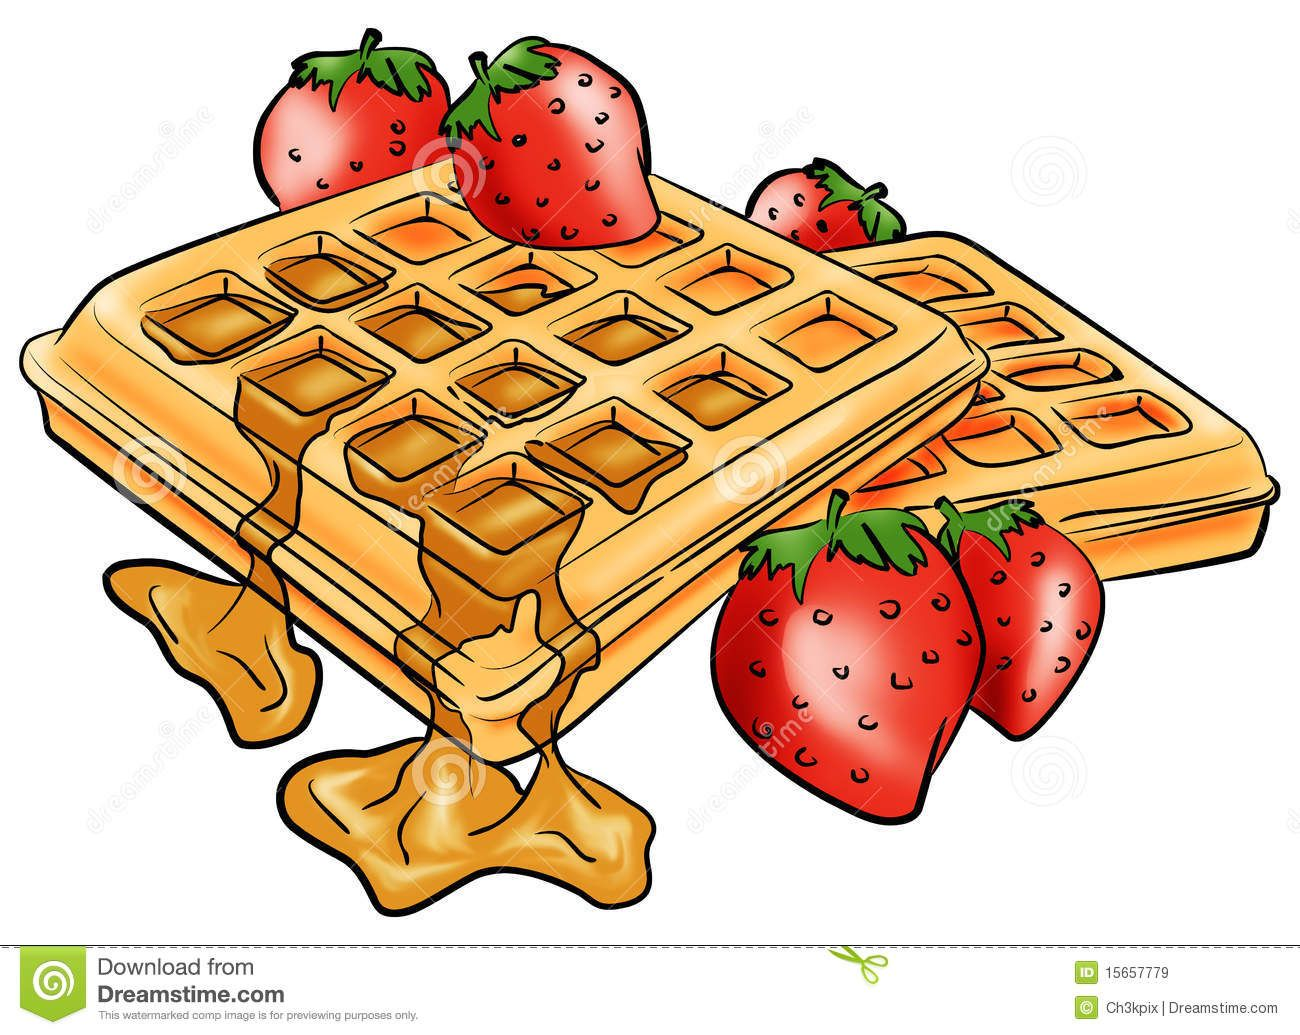 Waffle clipart waffle bar. Pictures of waffles use